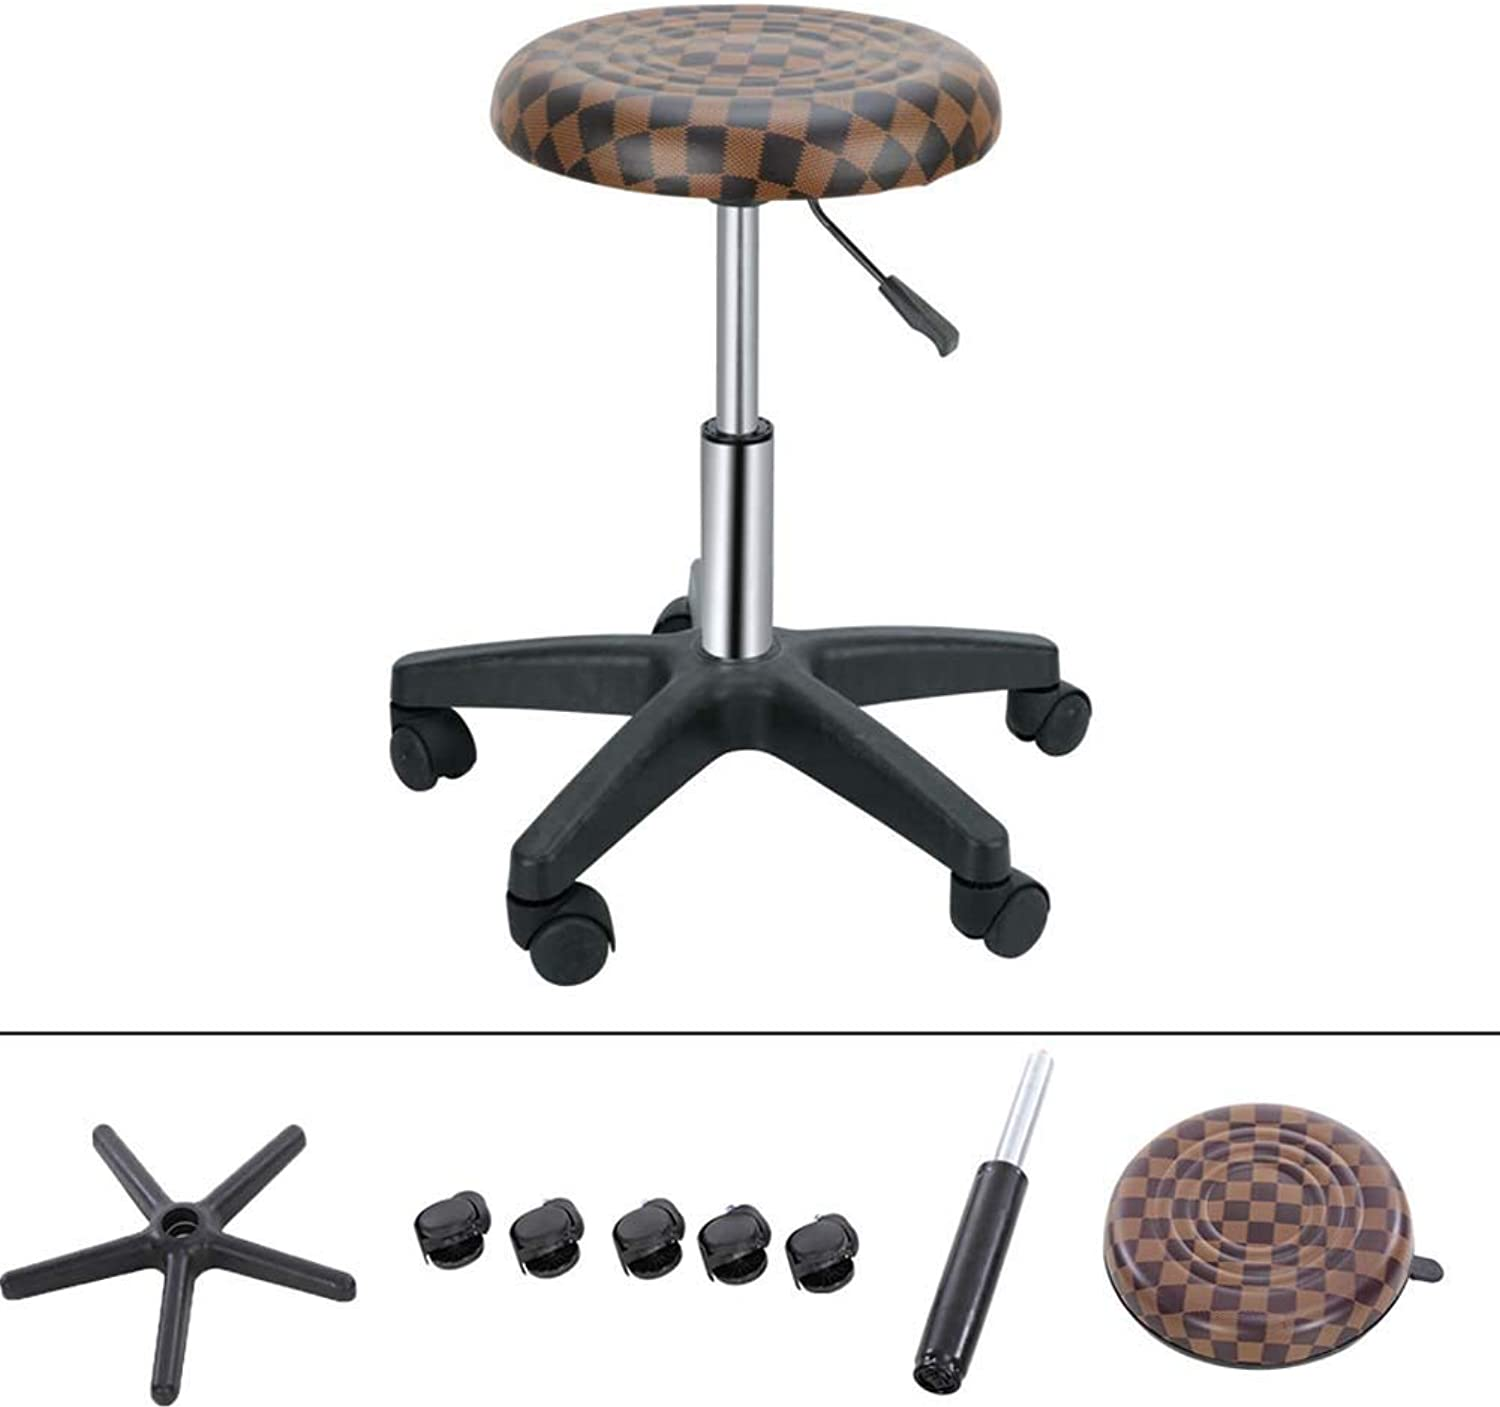 Wjq Swivel Stool Rolling PU Leather Cushion 360 Degree redation Adjust Height Freely Office Stool, Beauty Salon Stool, Medical Stool